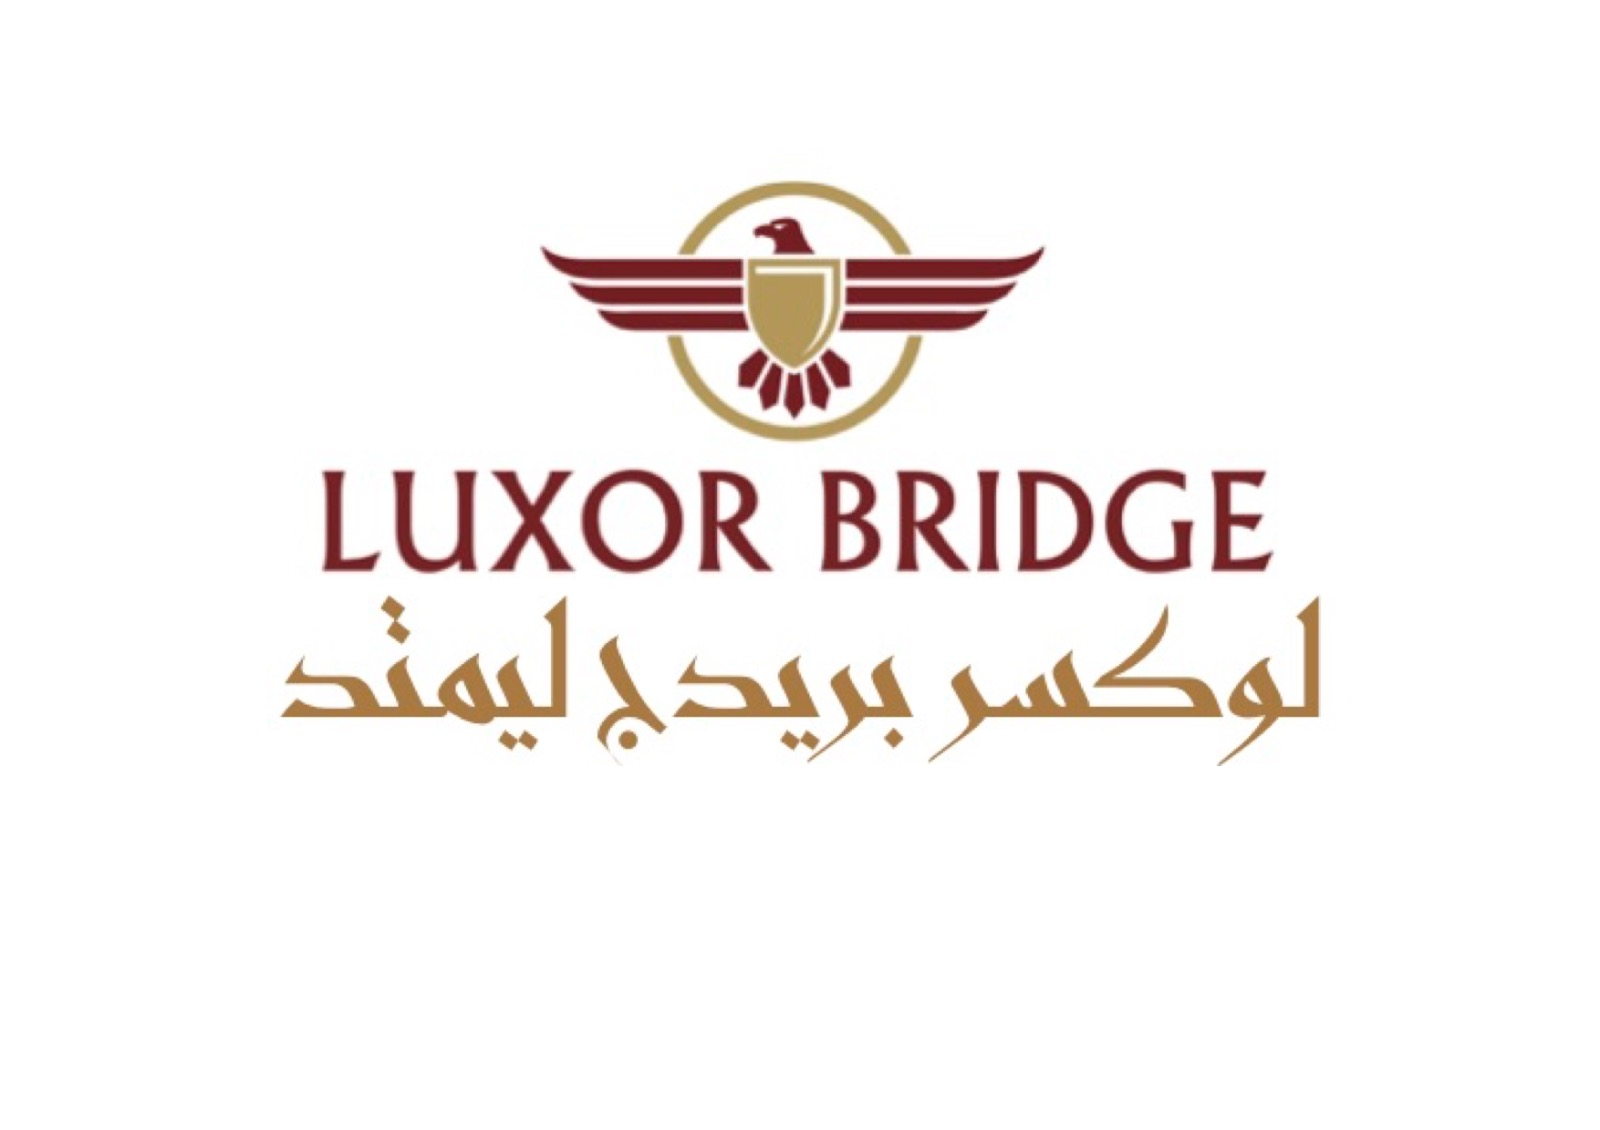 LUXOR BRIDGE DELTA